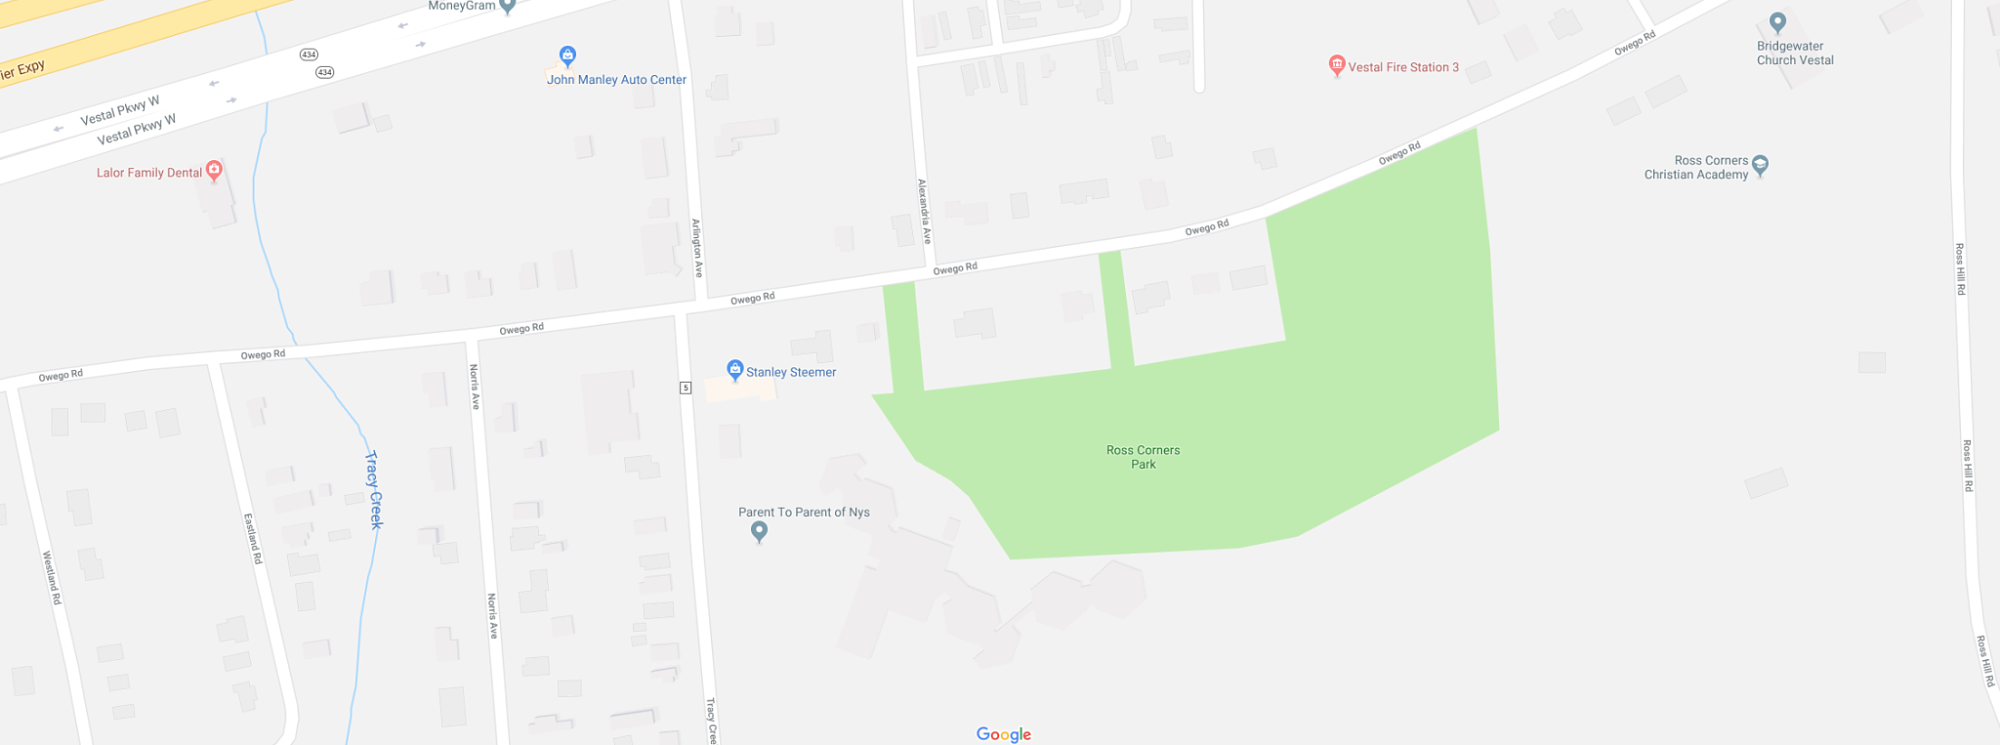 Ross Corners Park Map_opt.png